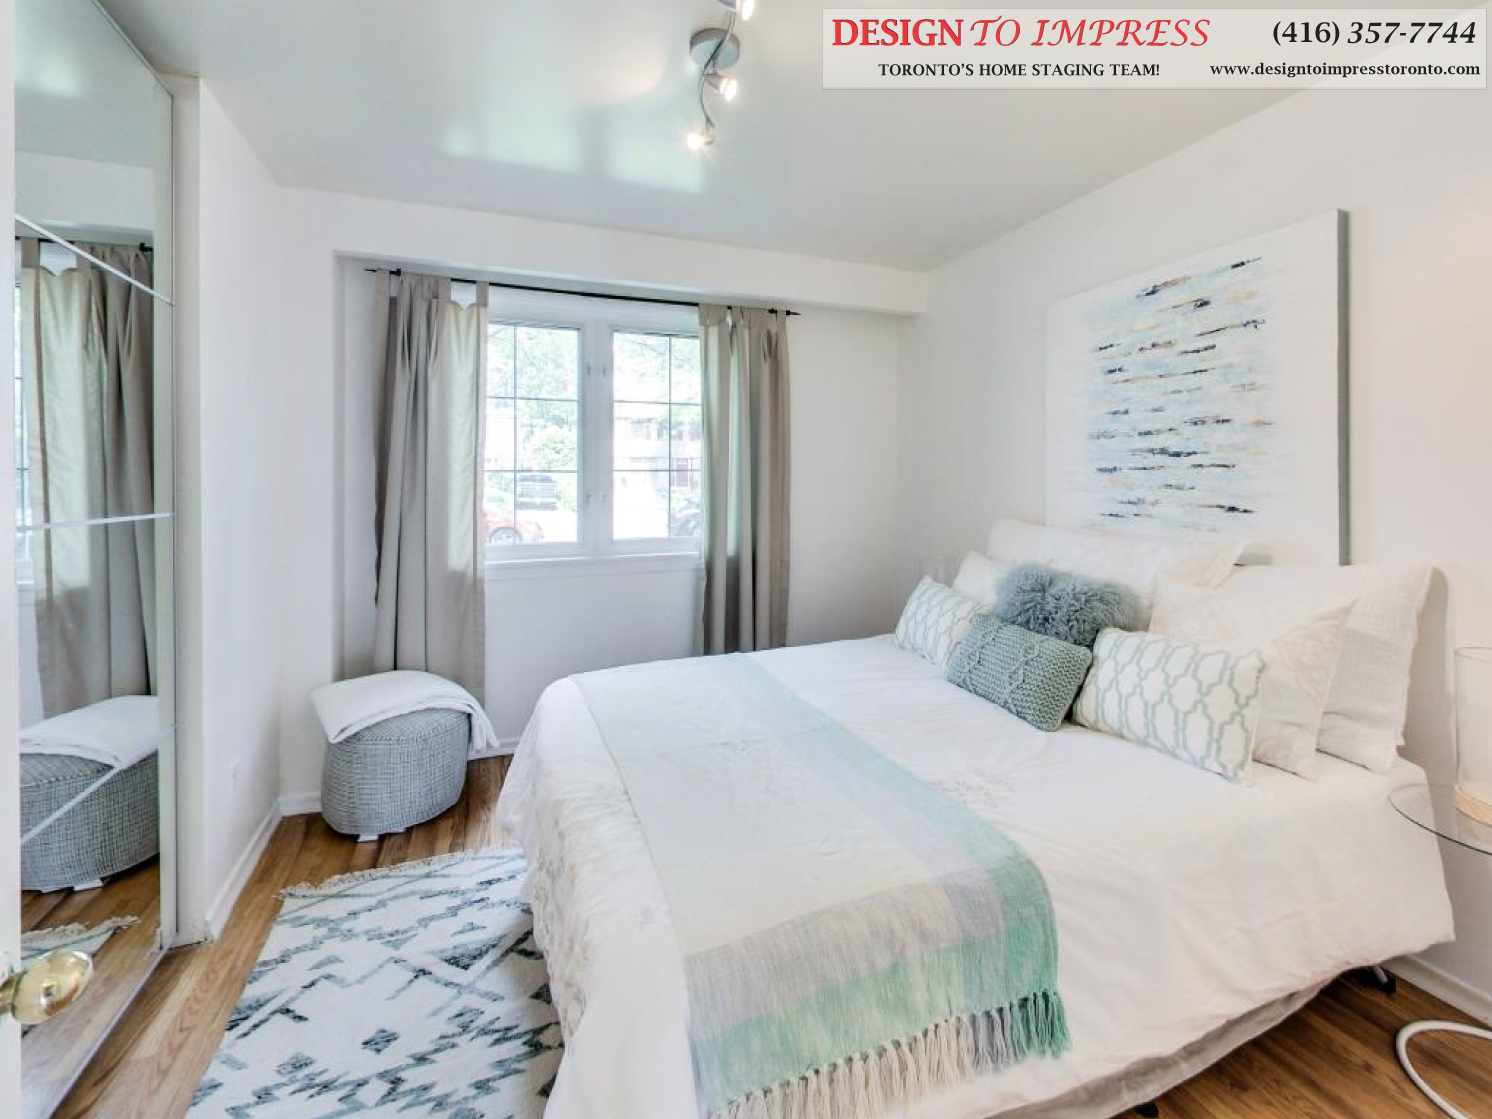 Third Bedroom, 41 Bournville, Scarborough Home Staging